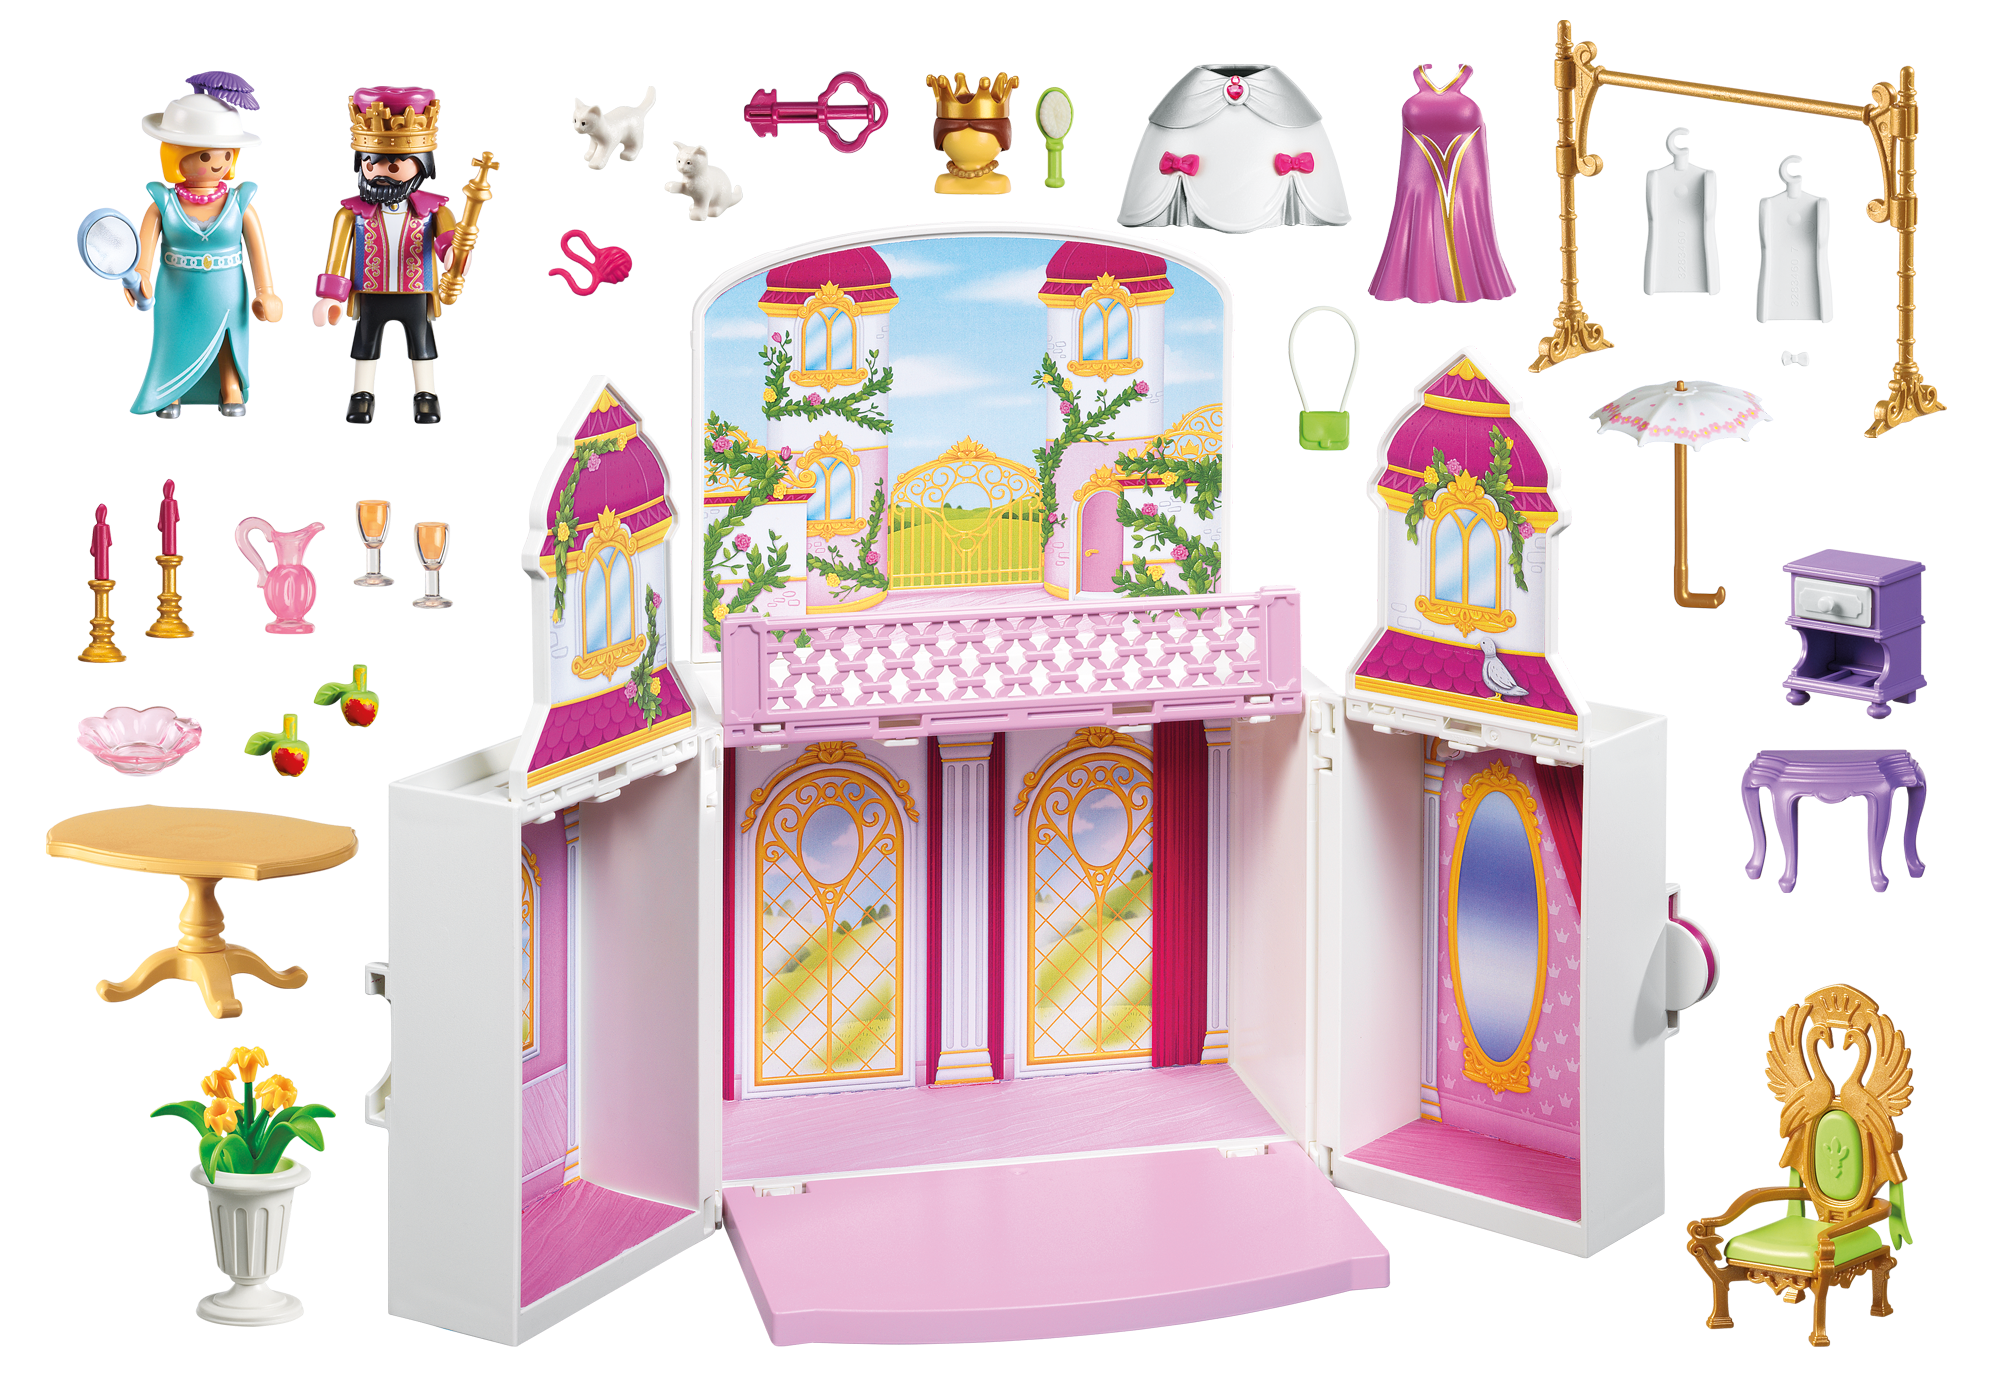 http://media.playmobil.com/i/playmobil/4898_product_box_back/My Secret Royal Palace Play Box